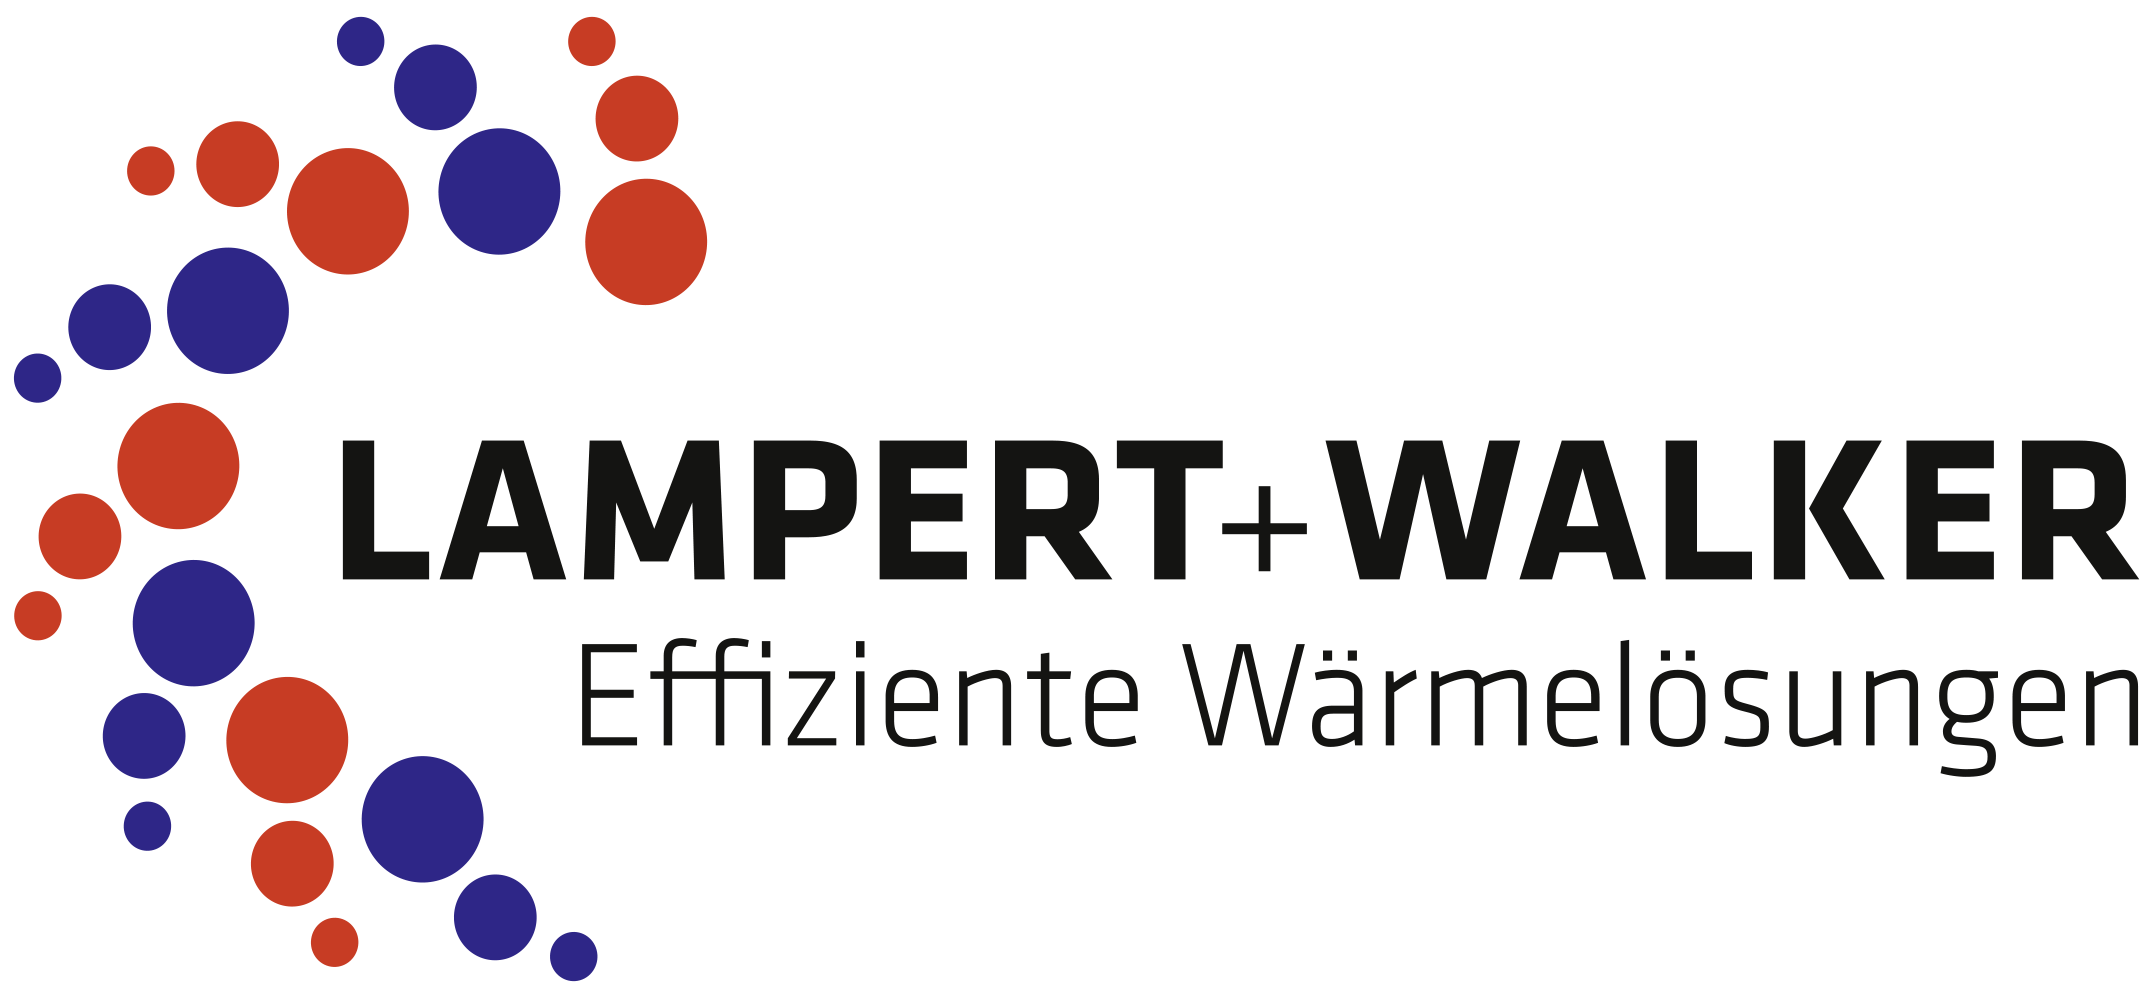 logo lampert walker 812021